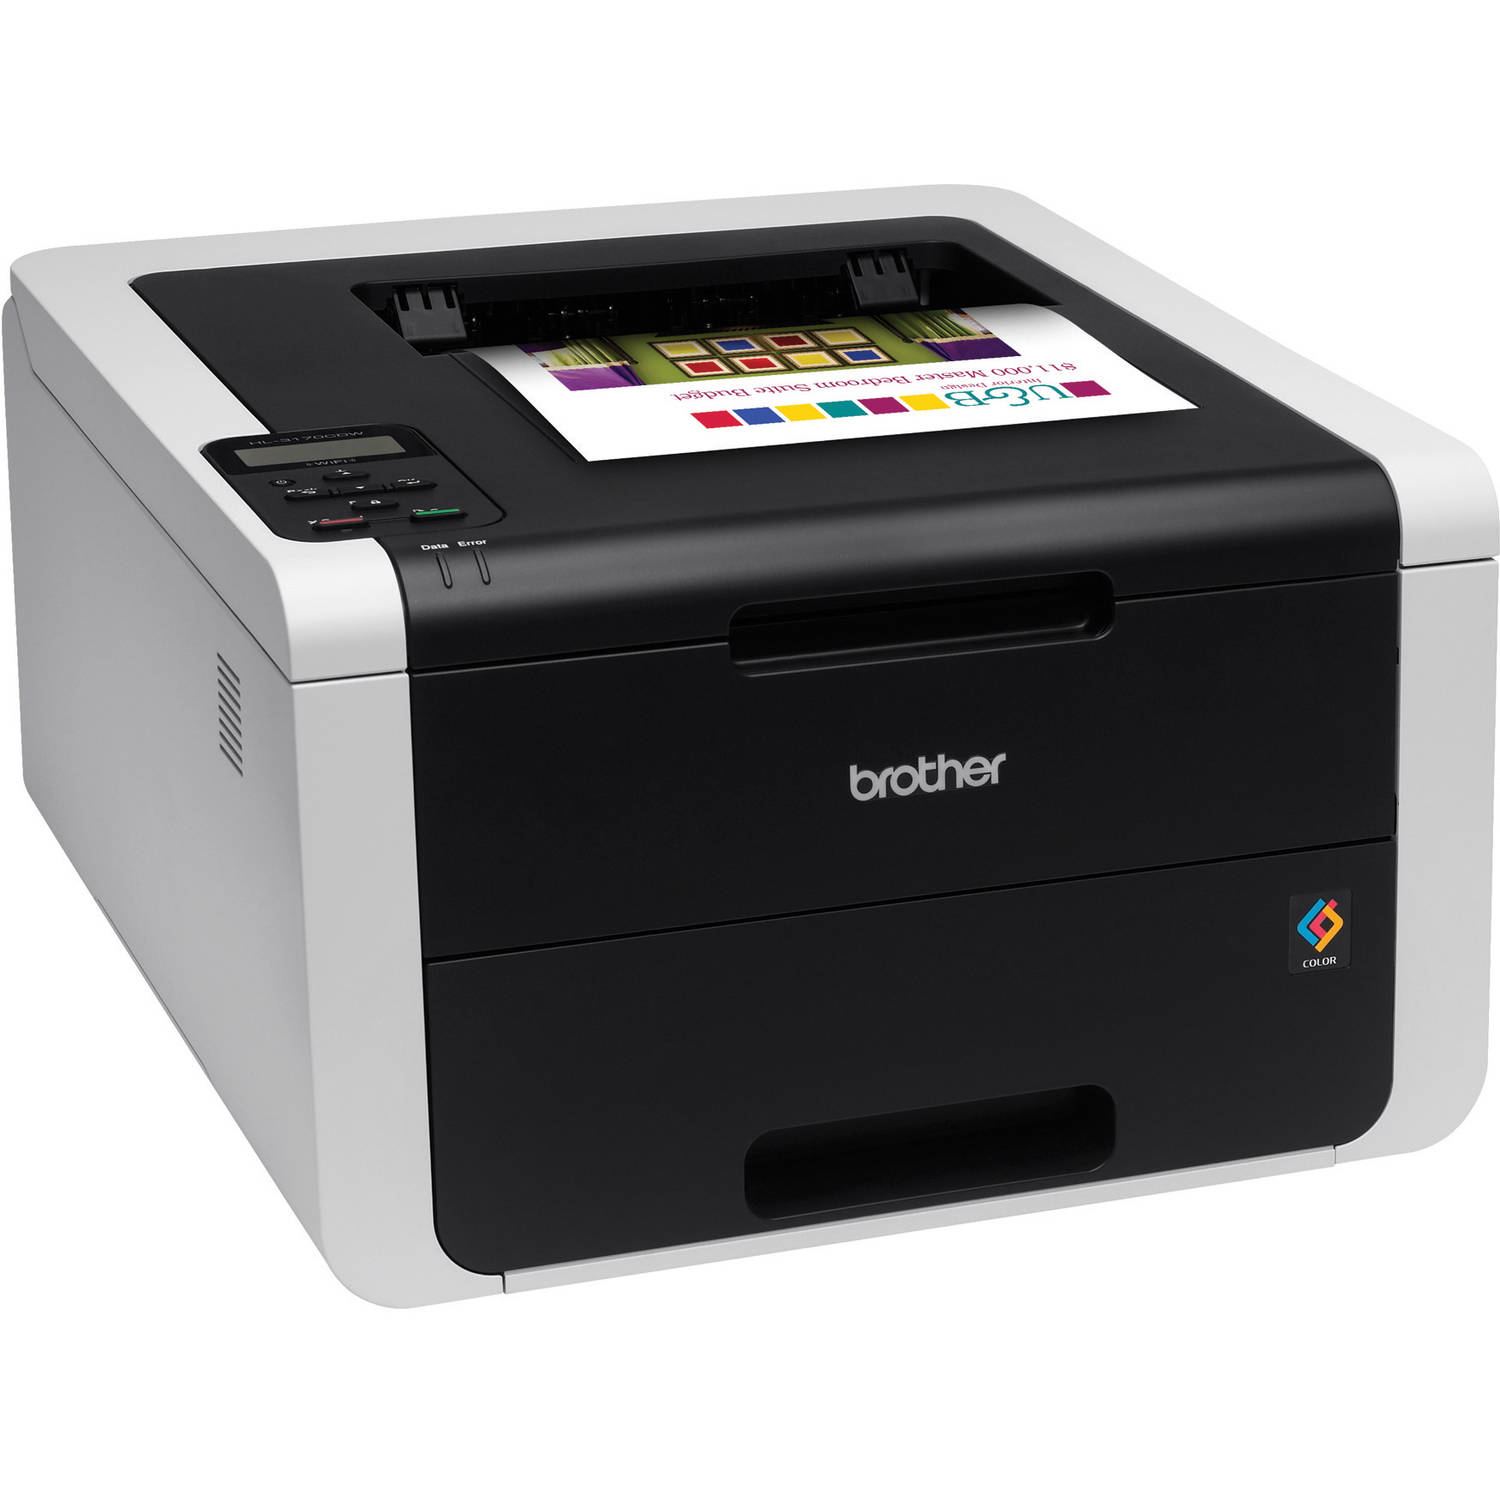 Refurbished Brother HL3170CDW Color Laser Printer